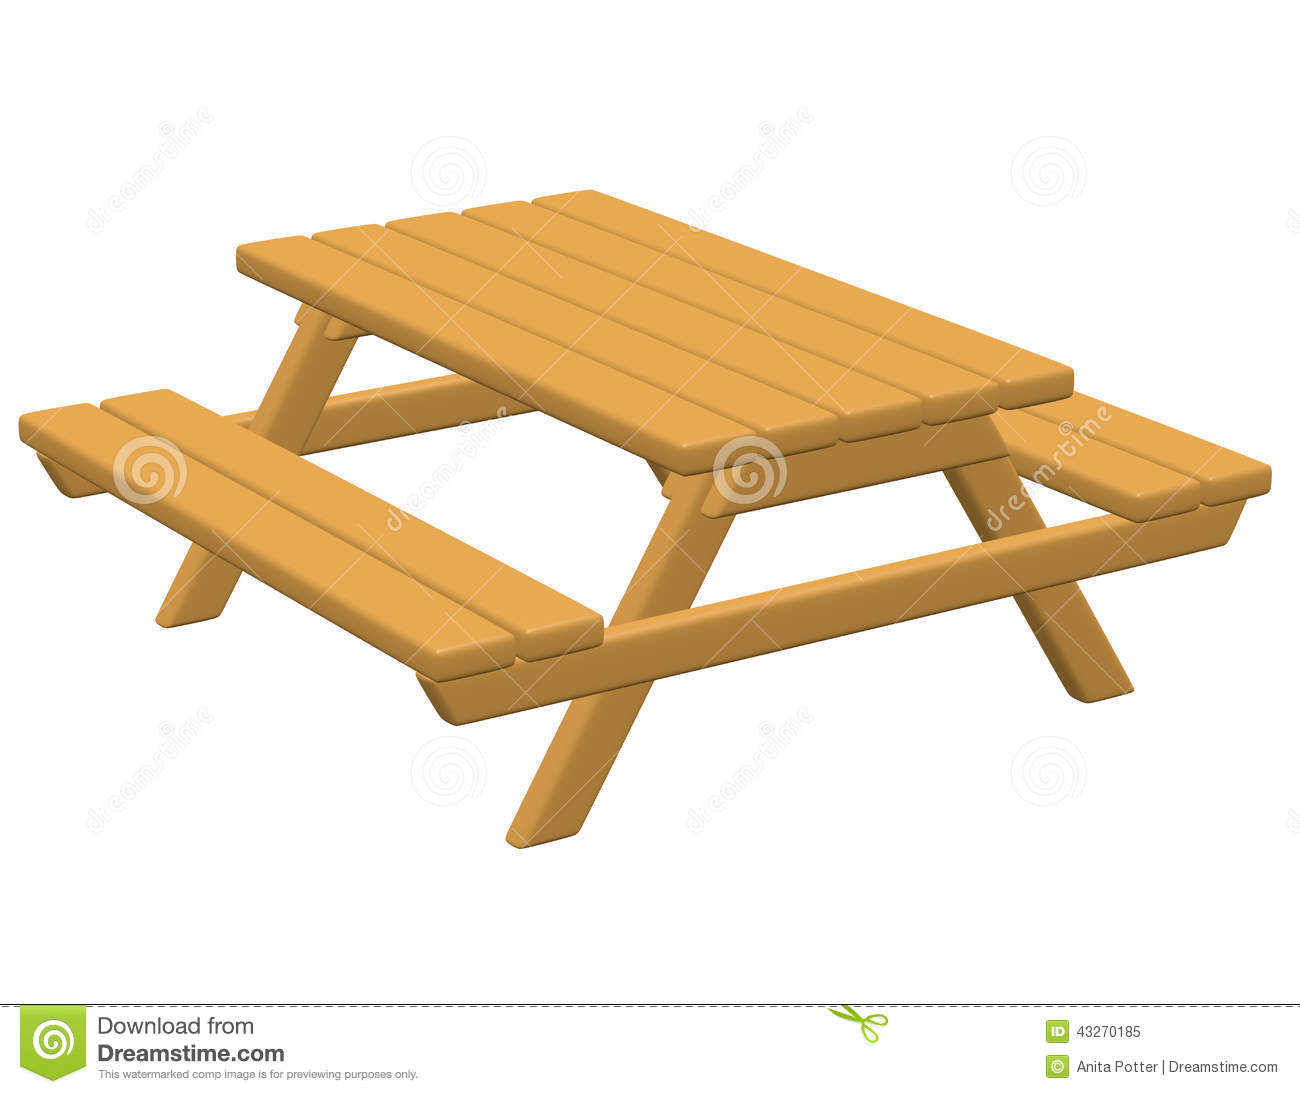 3d Render of a Picnic Table